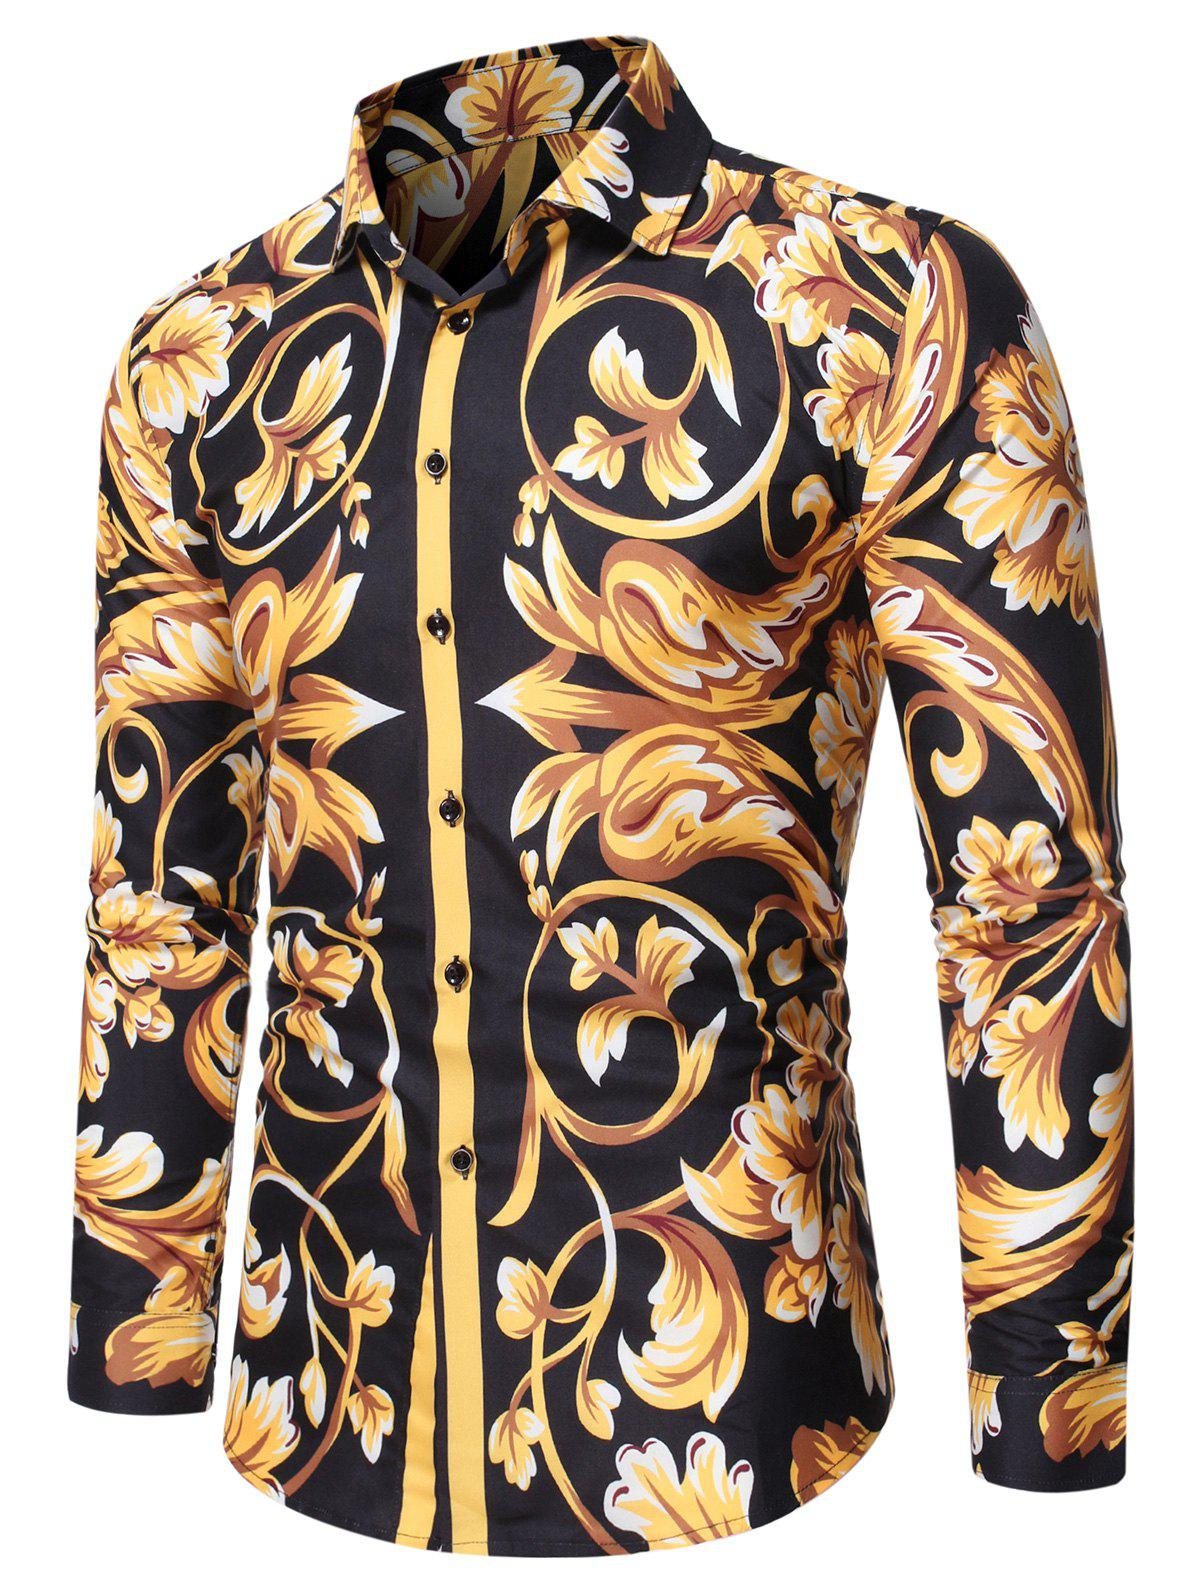 Baroque Print Button Up Long Sleeve T Shirt - multicolor S